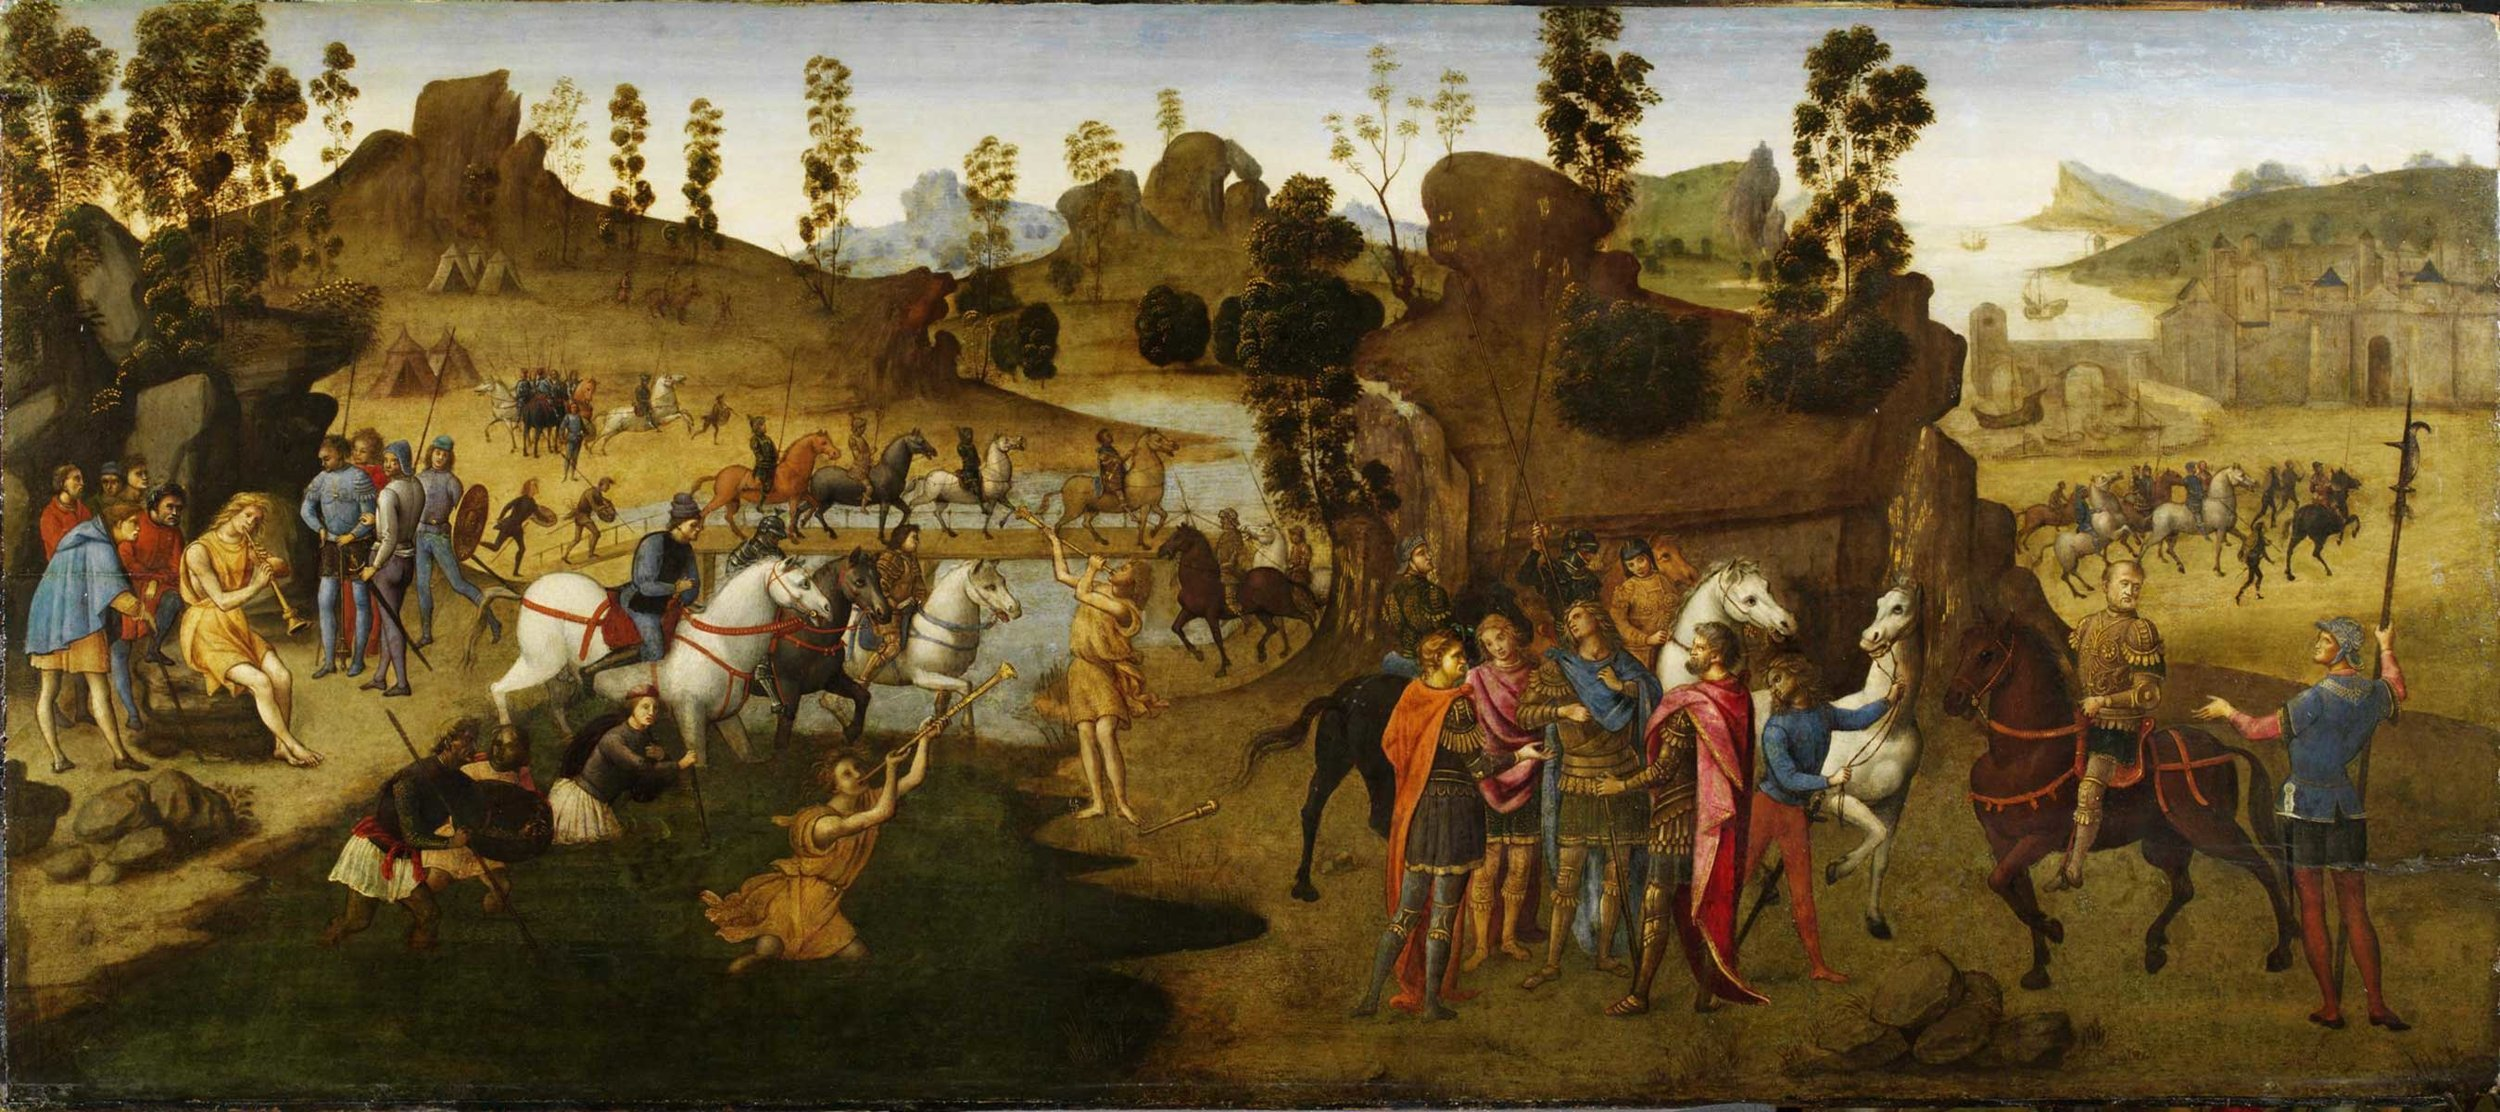 Julius Caesar and the Crossing of the Rubicon,  Francesco Granacci, 1494. Courtesy of Victoria and Albert Museum.